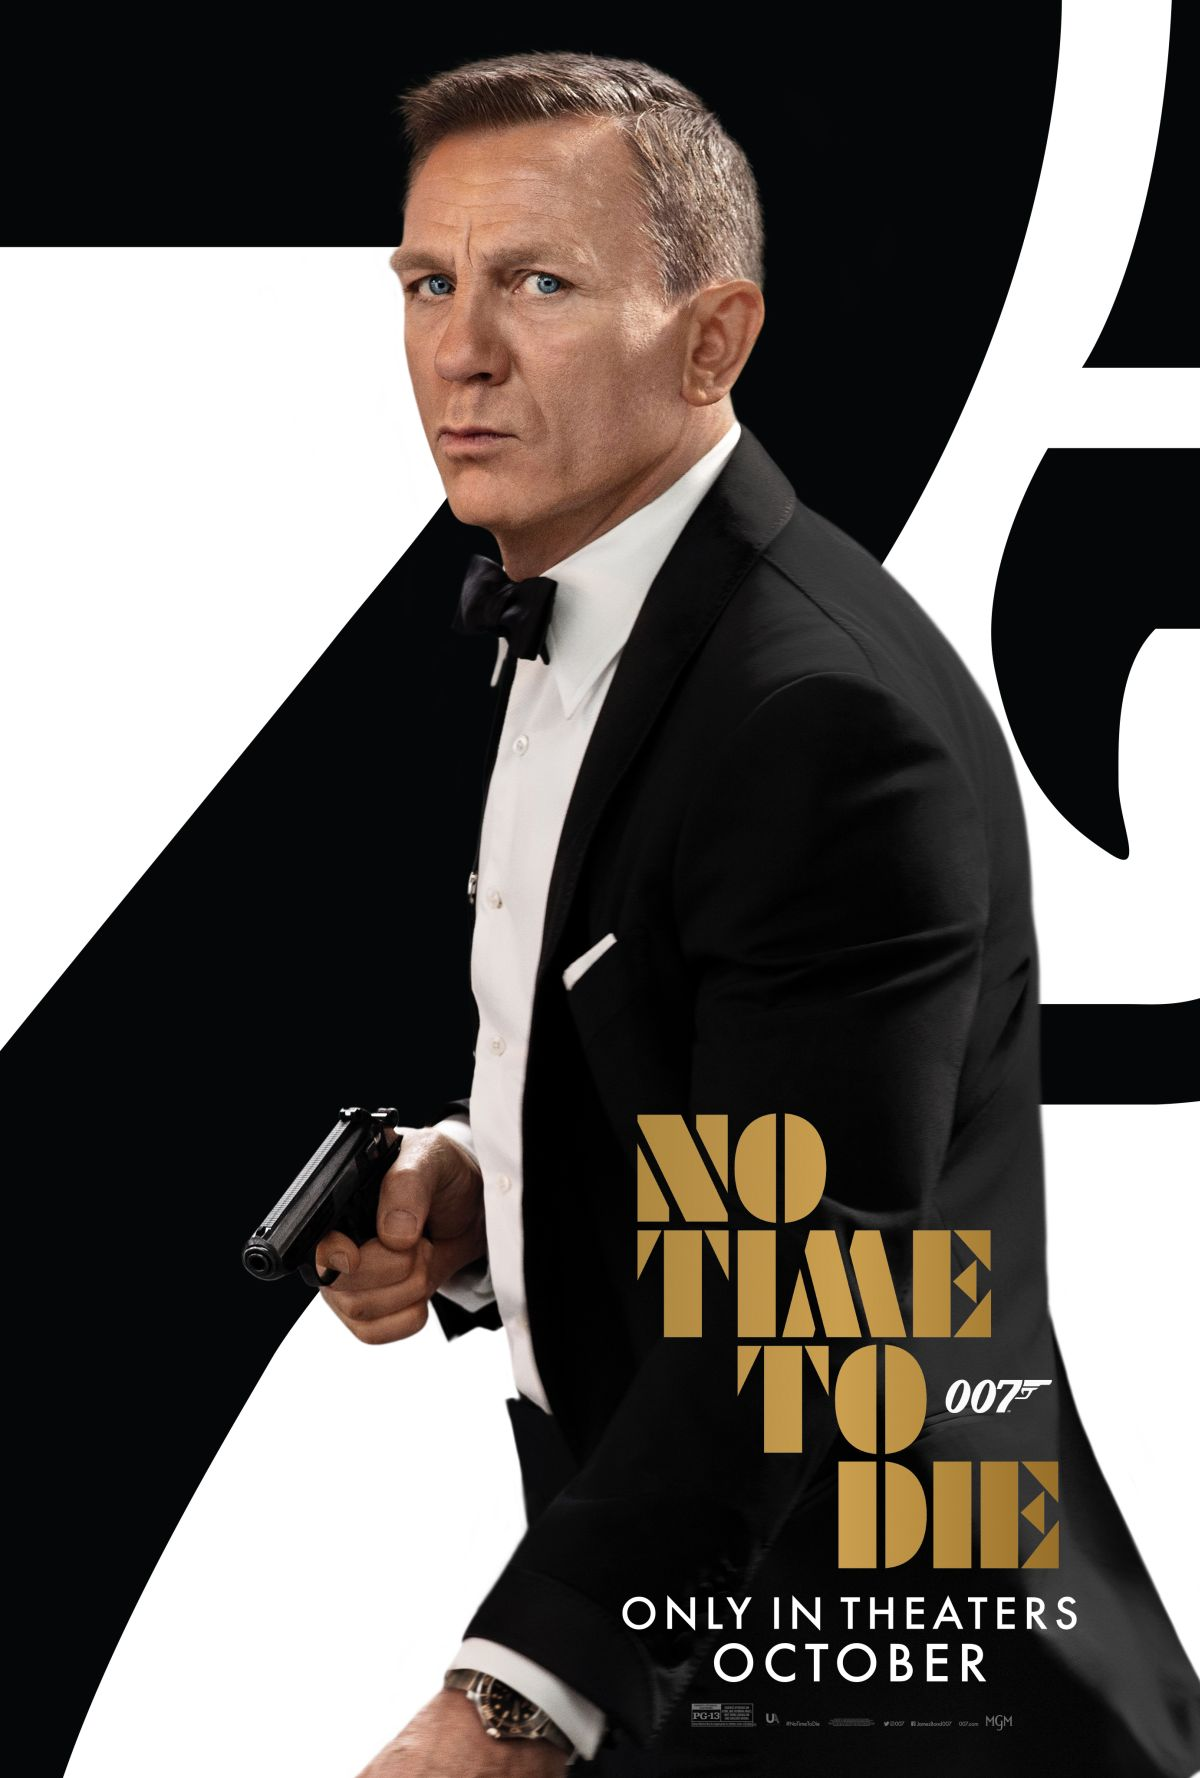 No time to die poster 1 007 d